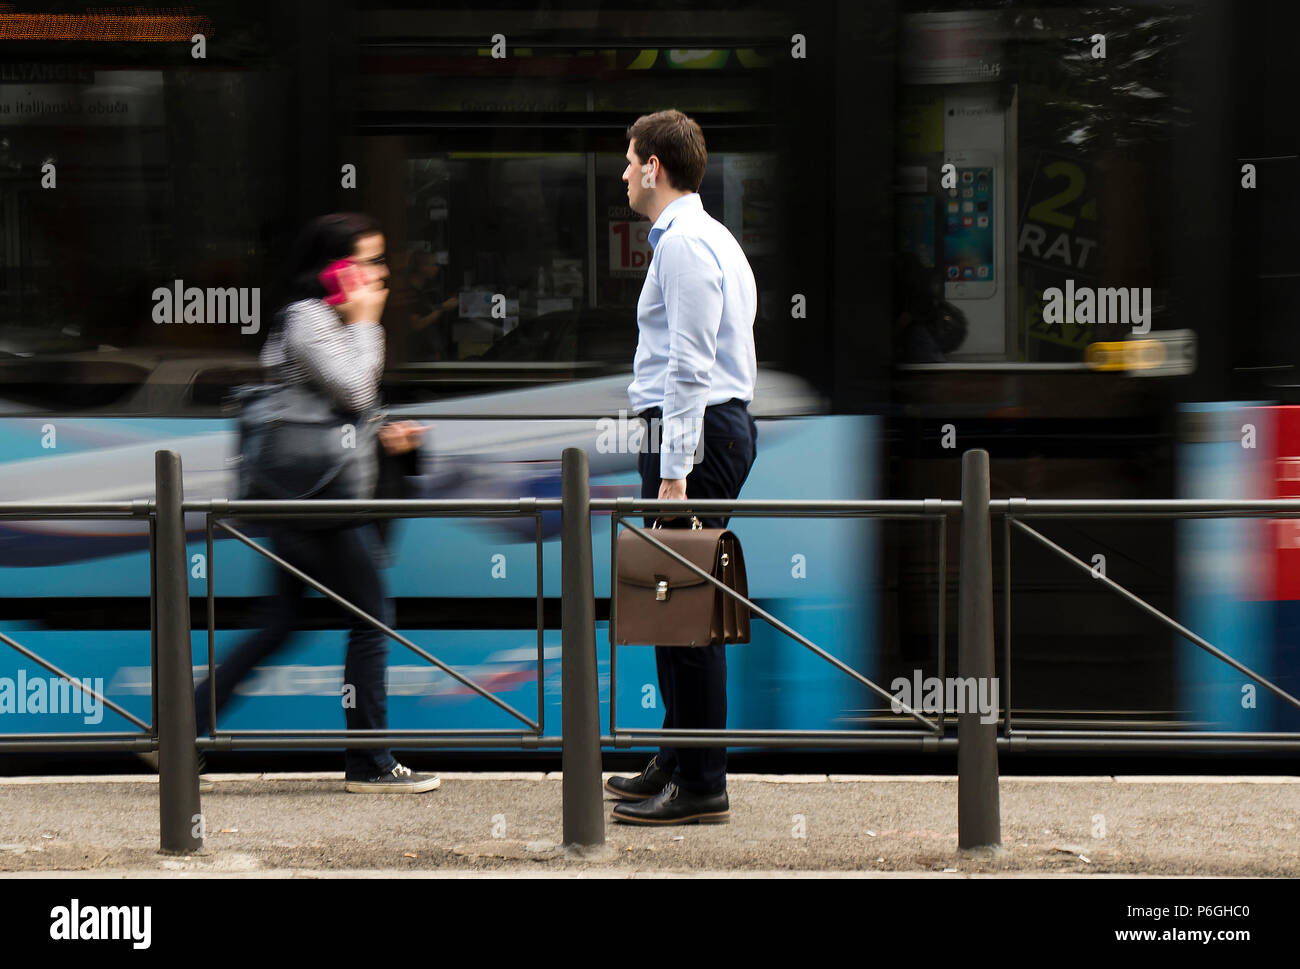 Belgrade, Serbia - April 24, 2018 : One white-collar man with briefcase standing at a bus stop and waiting for public transportation with blurry motio - Stock Image